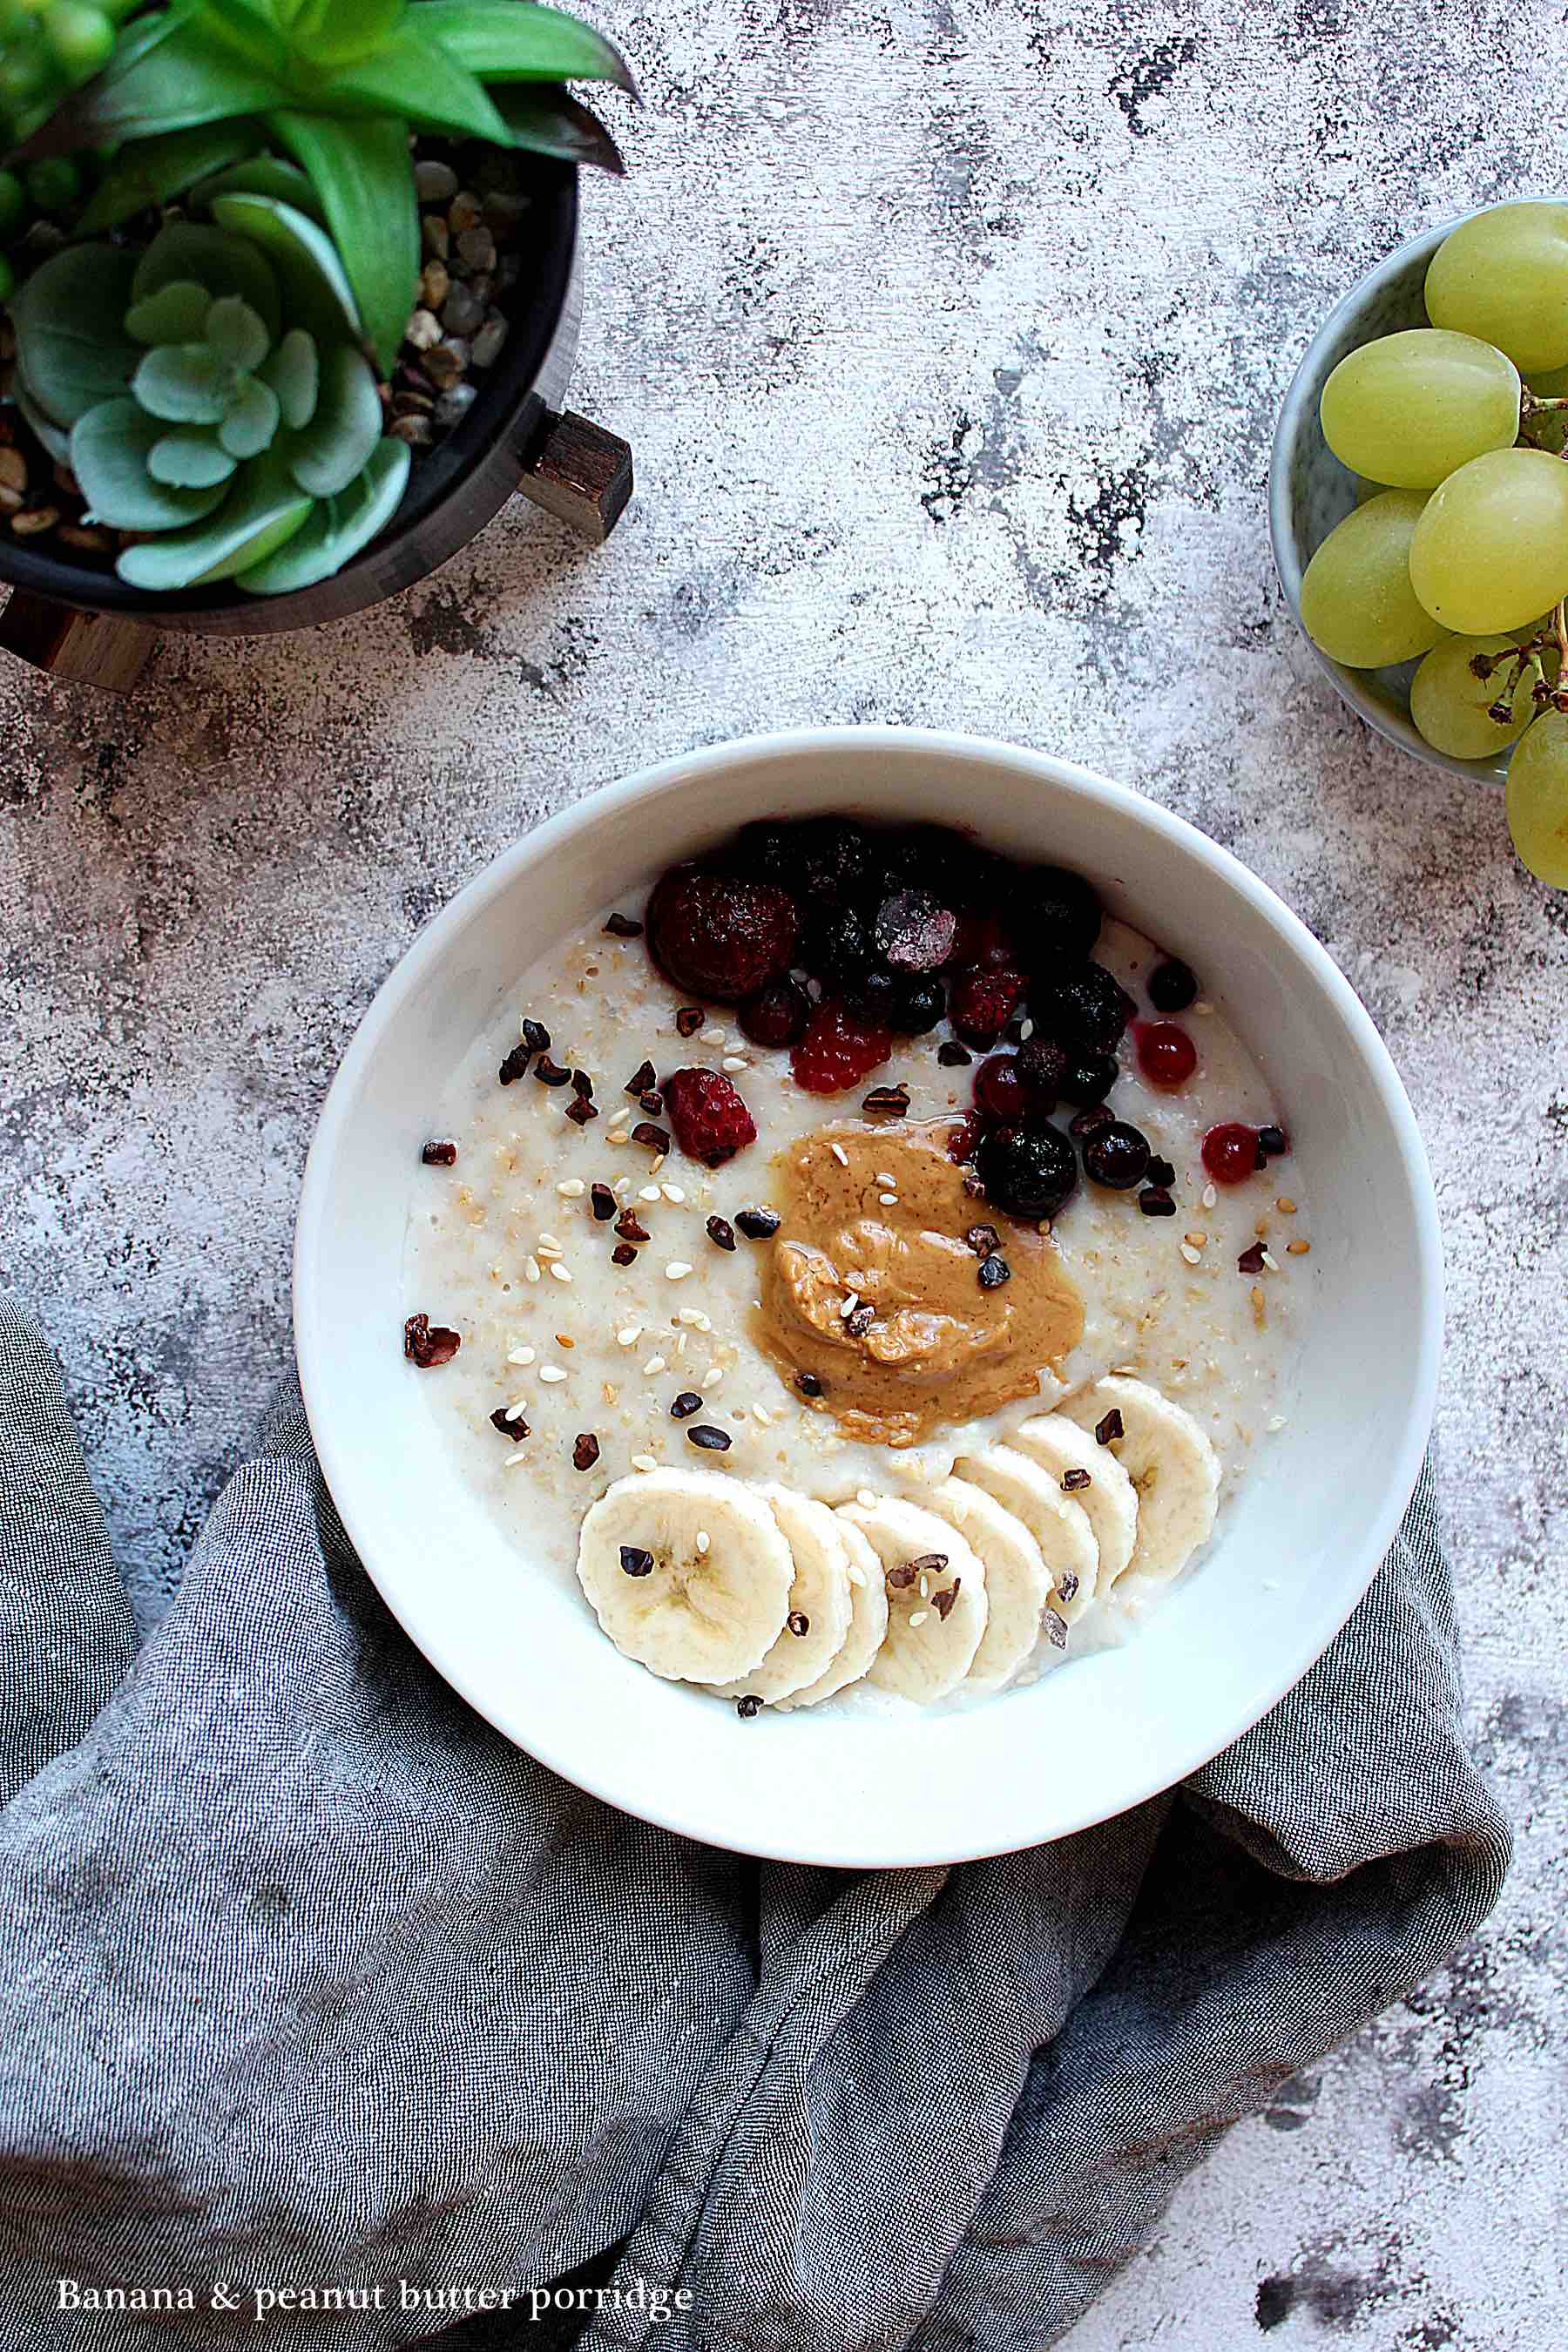 Banana and peanut butter creamy porridge